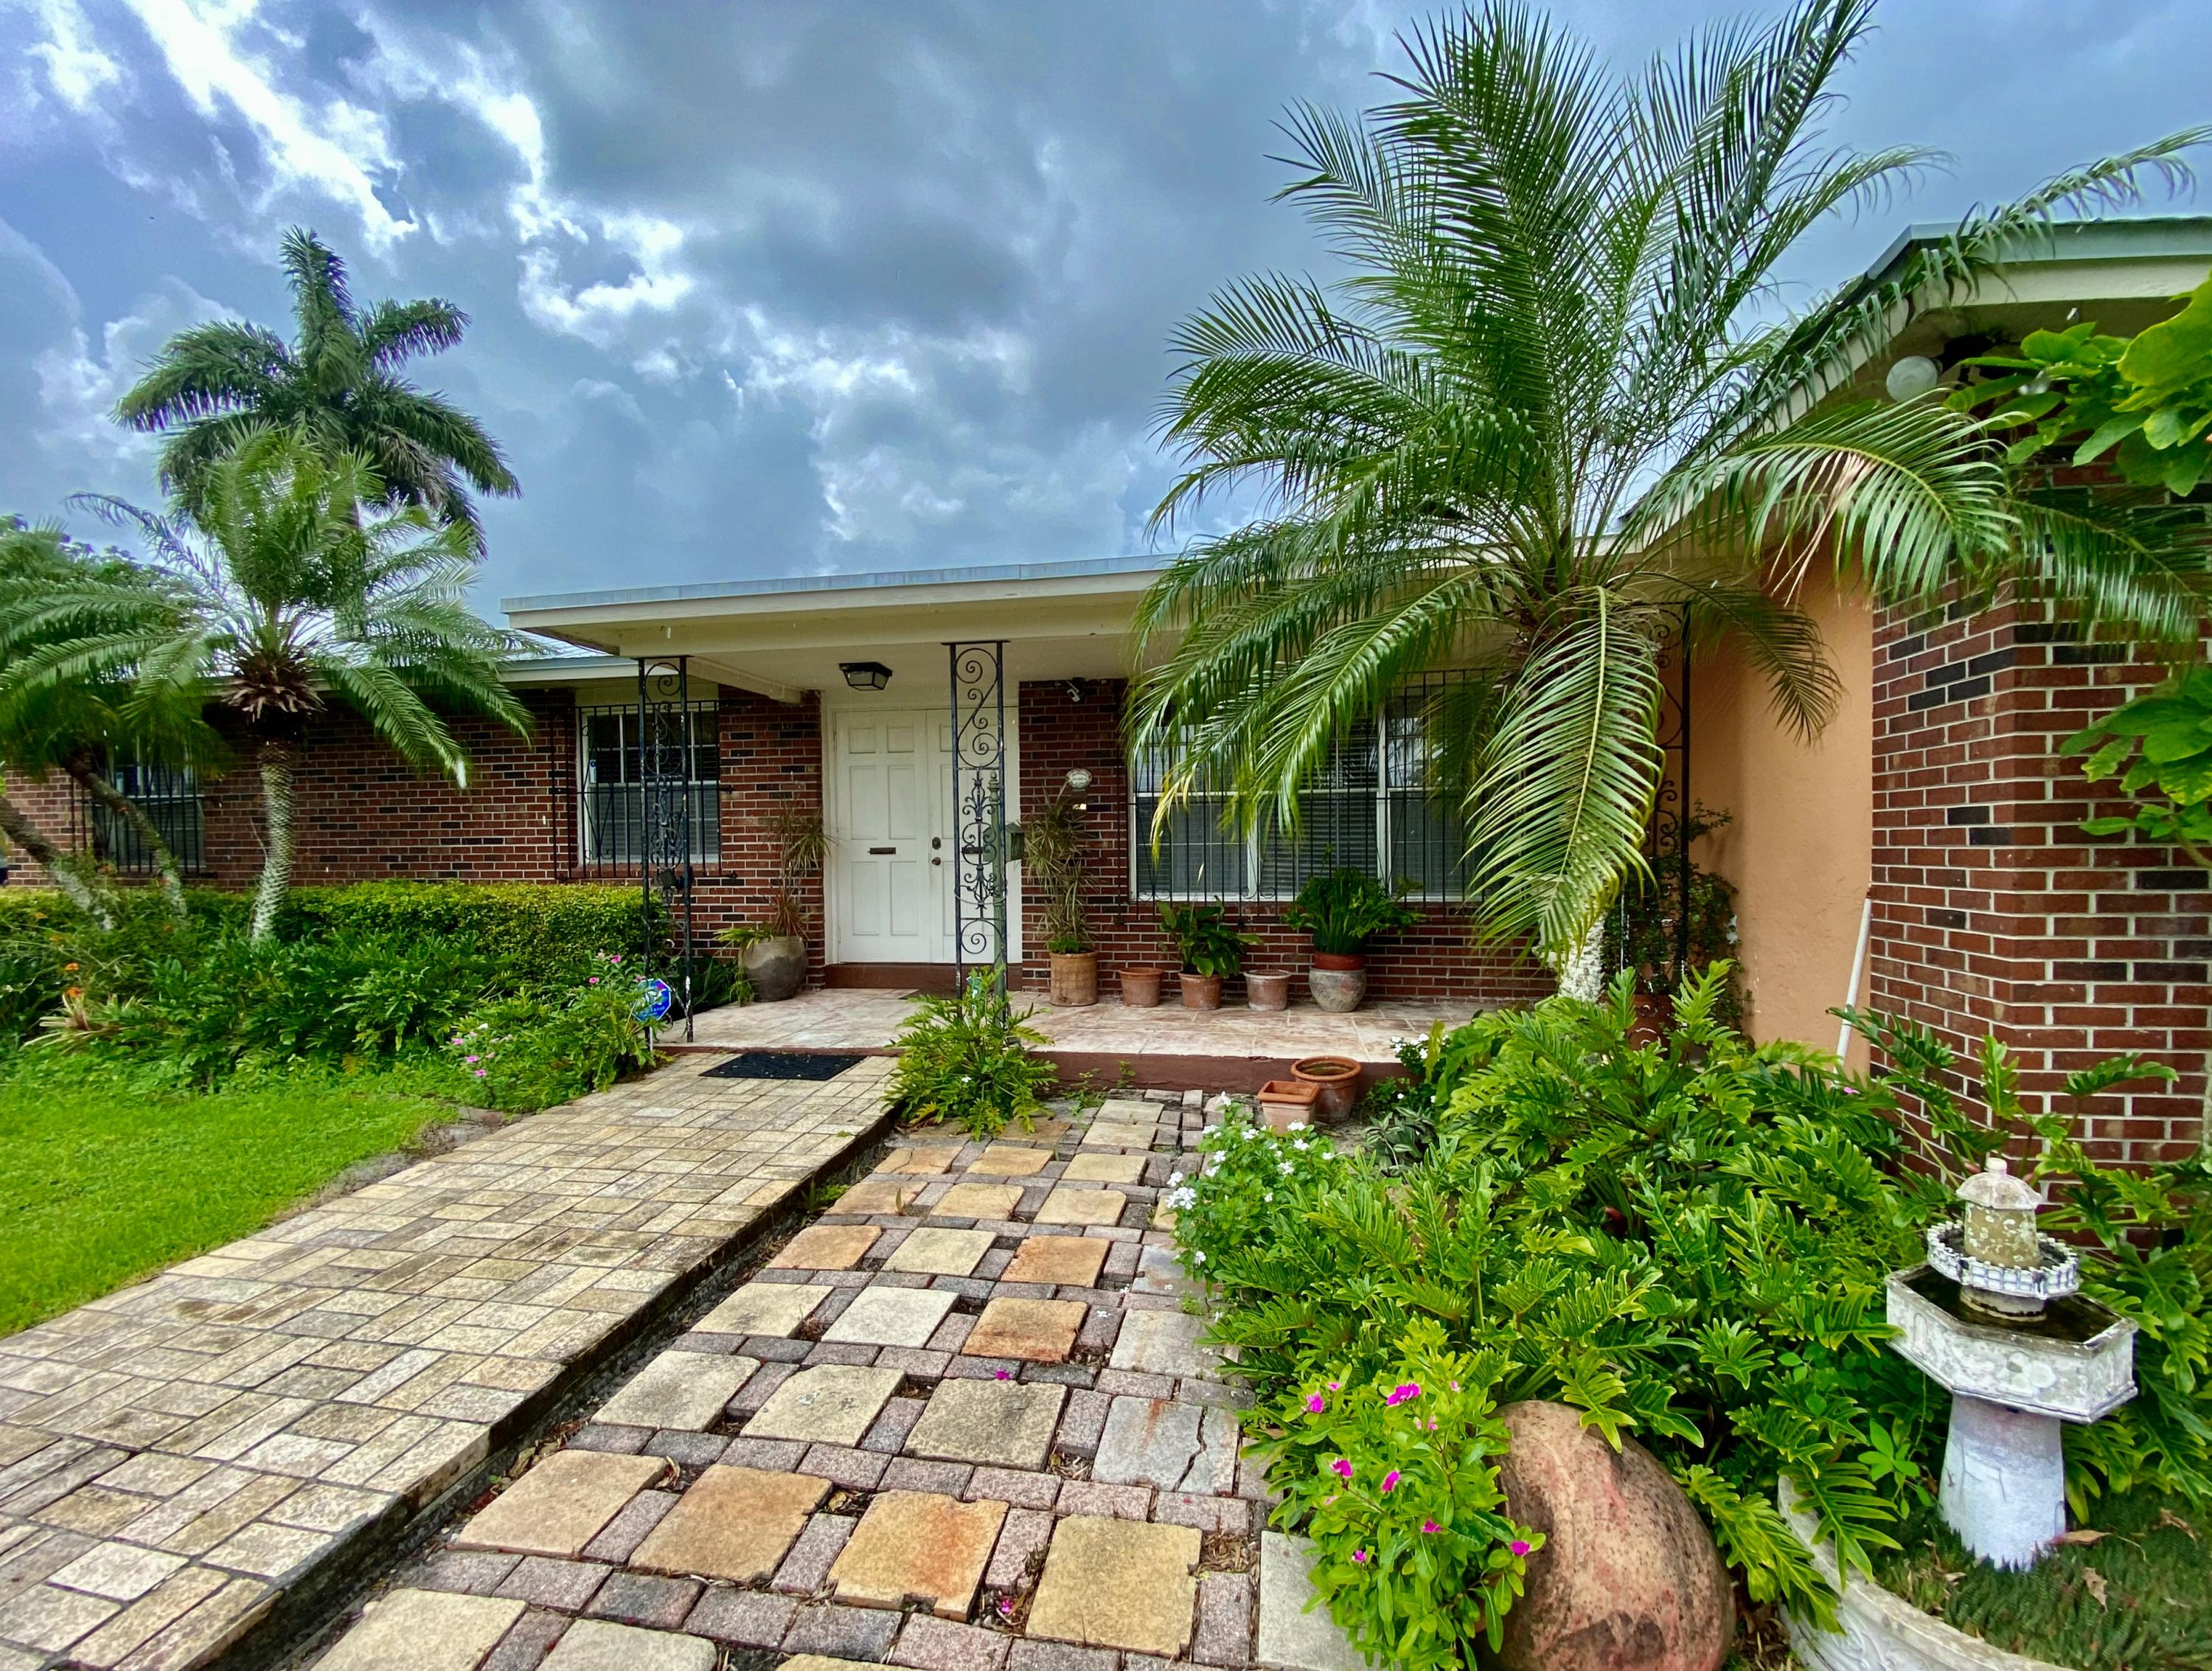 Home for sale in 41-42-37, SUB BY STATE SURVEY OF BLK 5 Belle Glade Florida